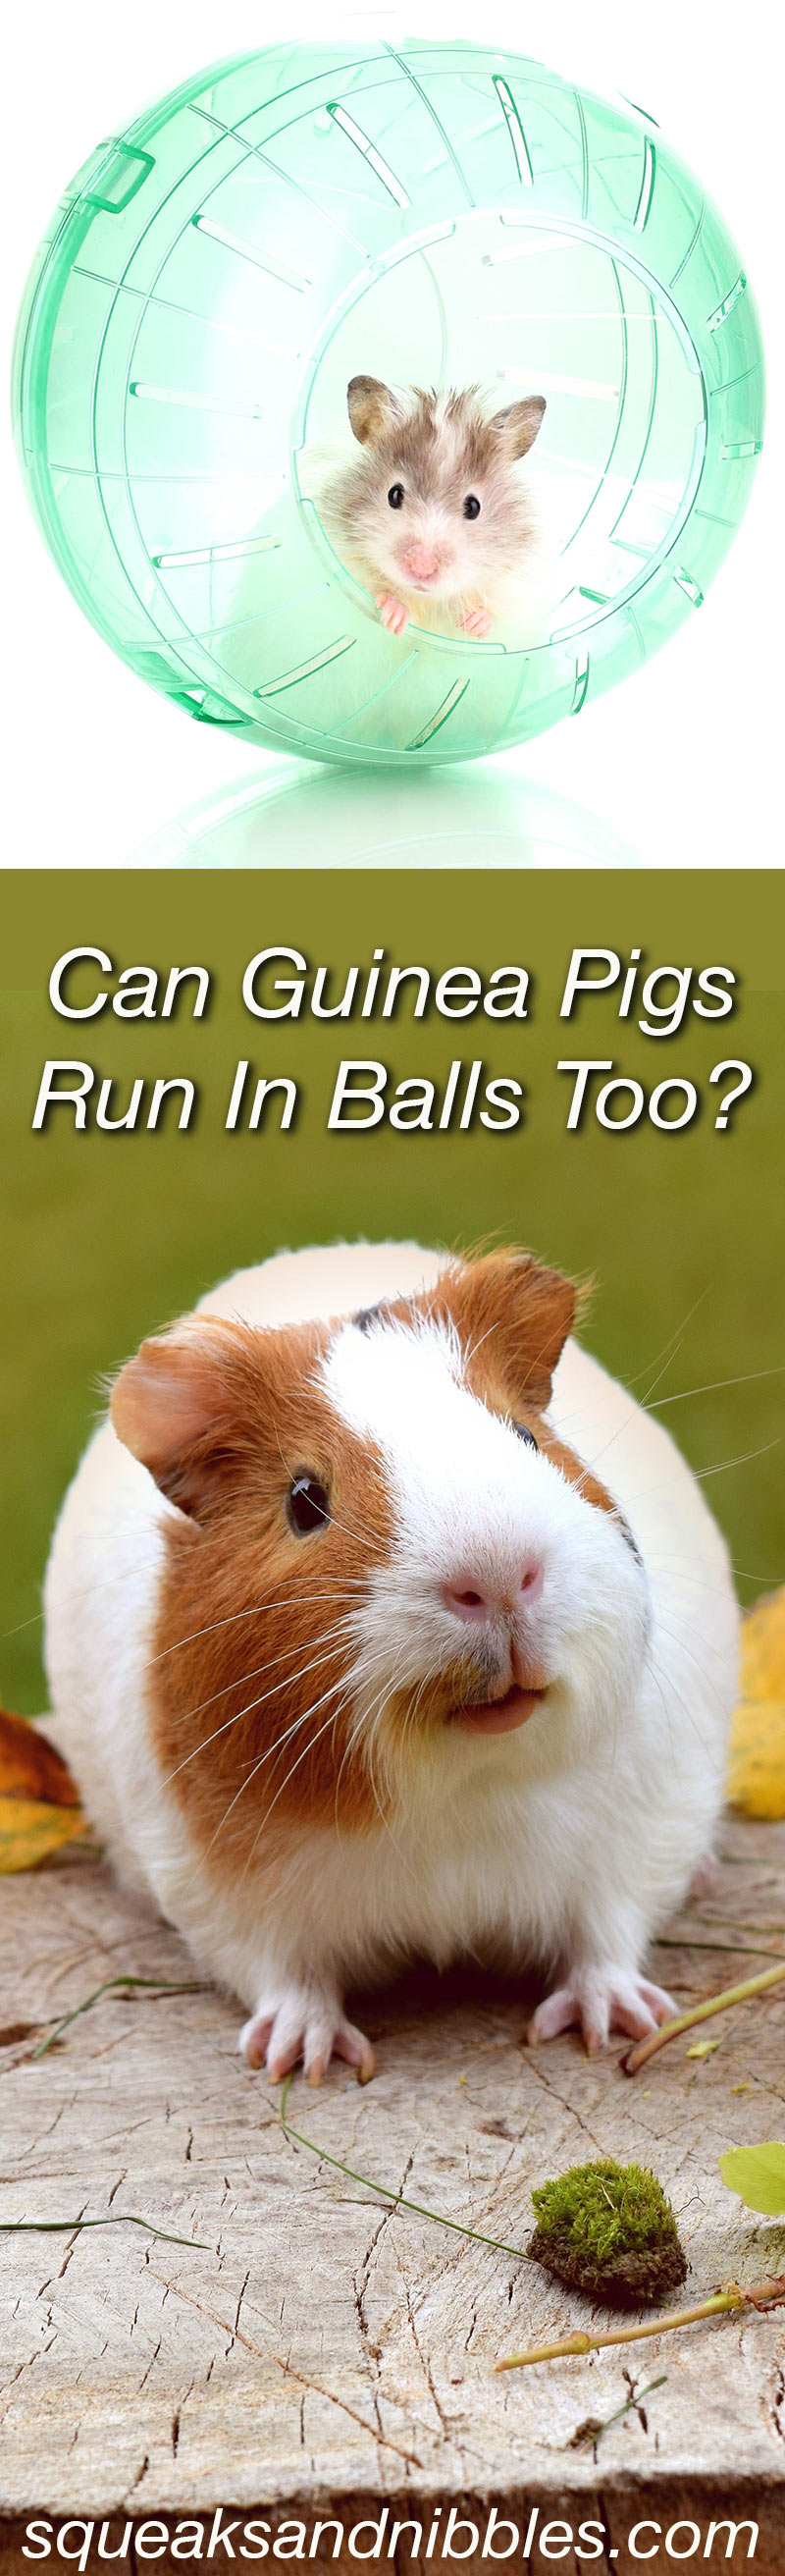 Can Guinea Pigs Run In Balls?